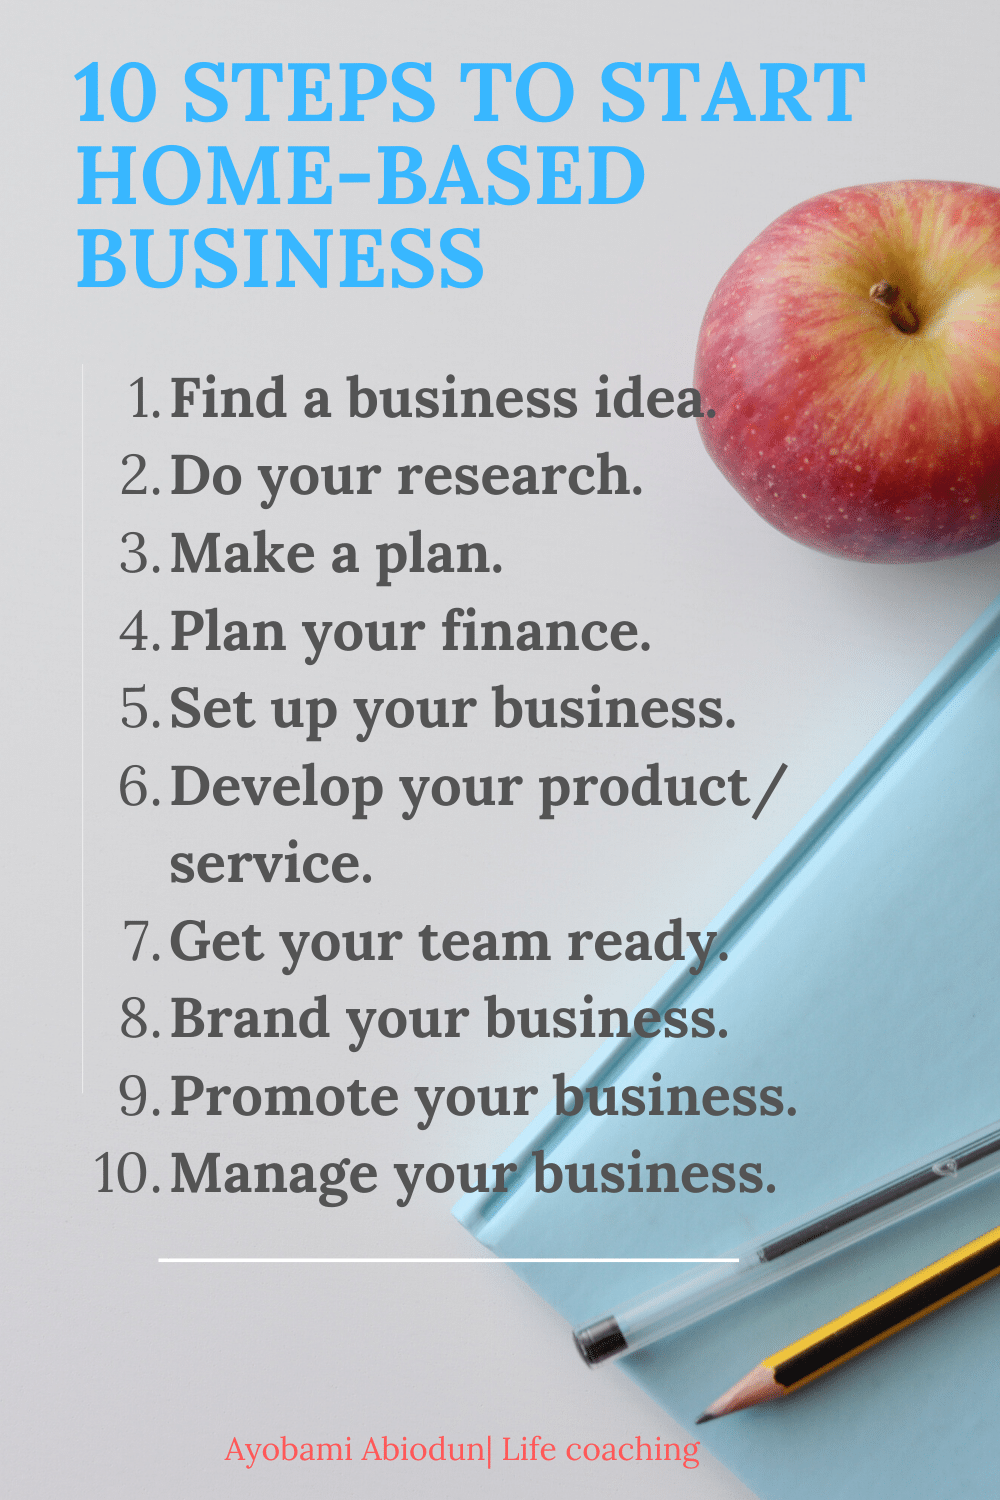 steps to start a home-based business